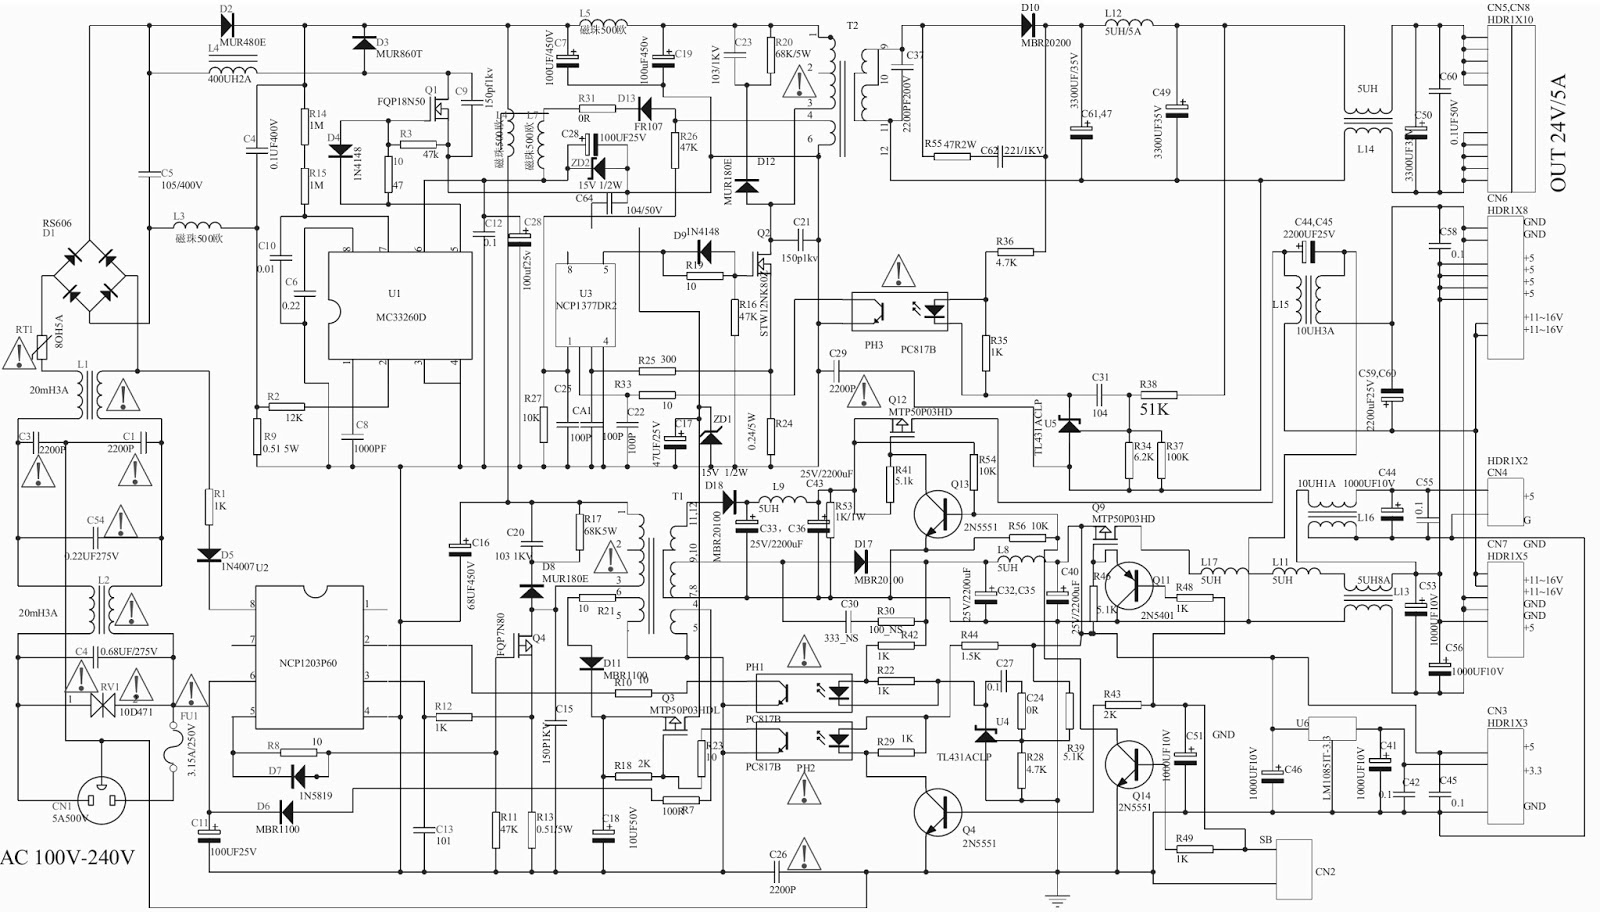 small resolution of toshiba dlp 52hm95 wiring diagram wiring diagramwiring toshiba diagram laptop3613u 1mpc 1 wiring diagram sourcetoshiba 22cv100u